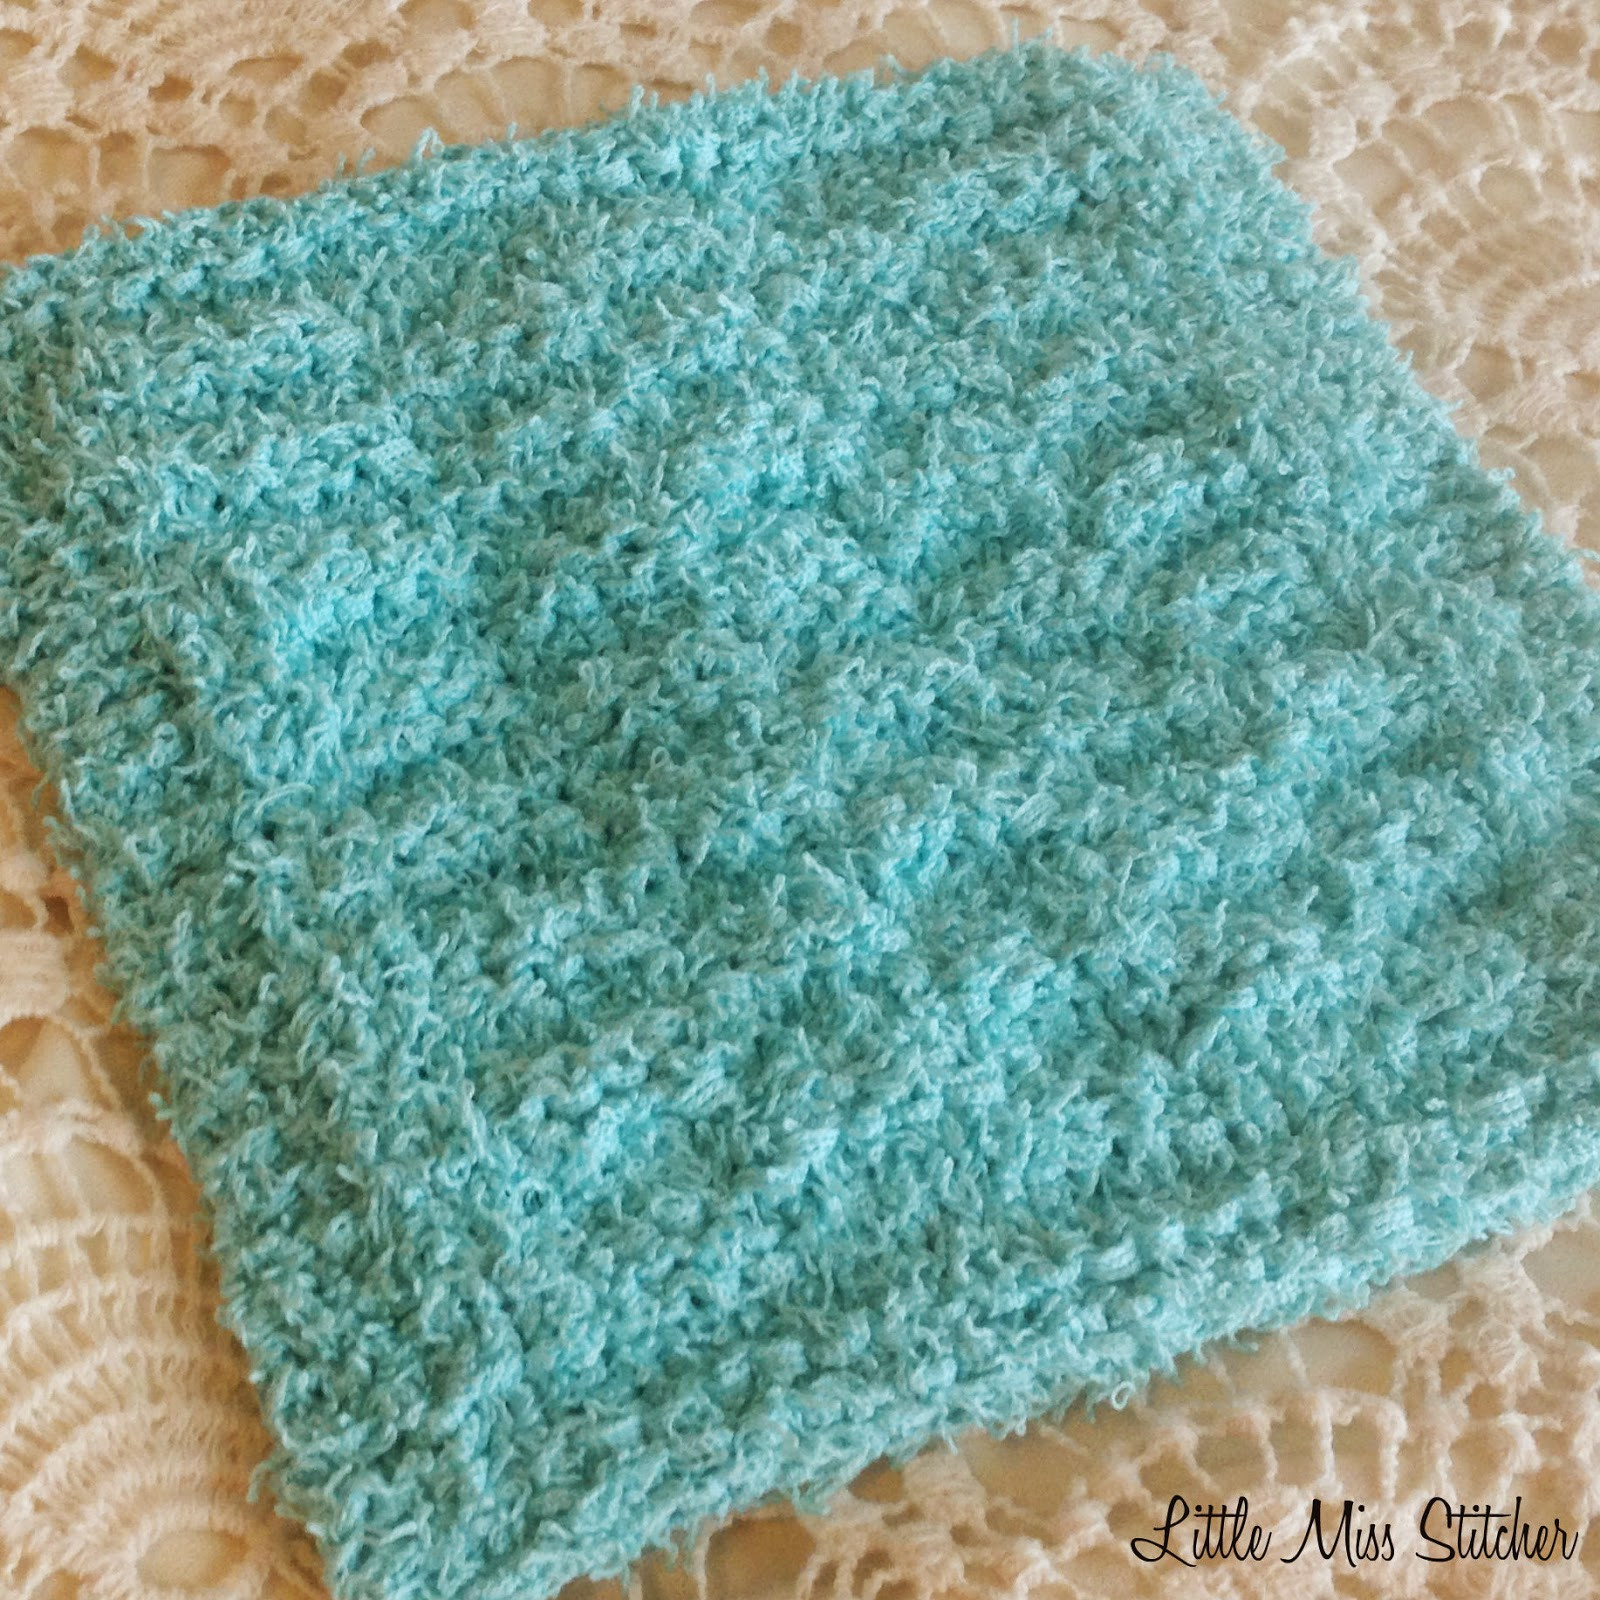 Knitted Dishcloth Elegant Little Miss Stitcher 5 Free Knit Dishcloth Patterns Of Gorgeous 46 Photos Knitted Dishcloth